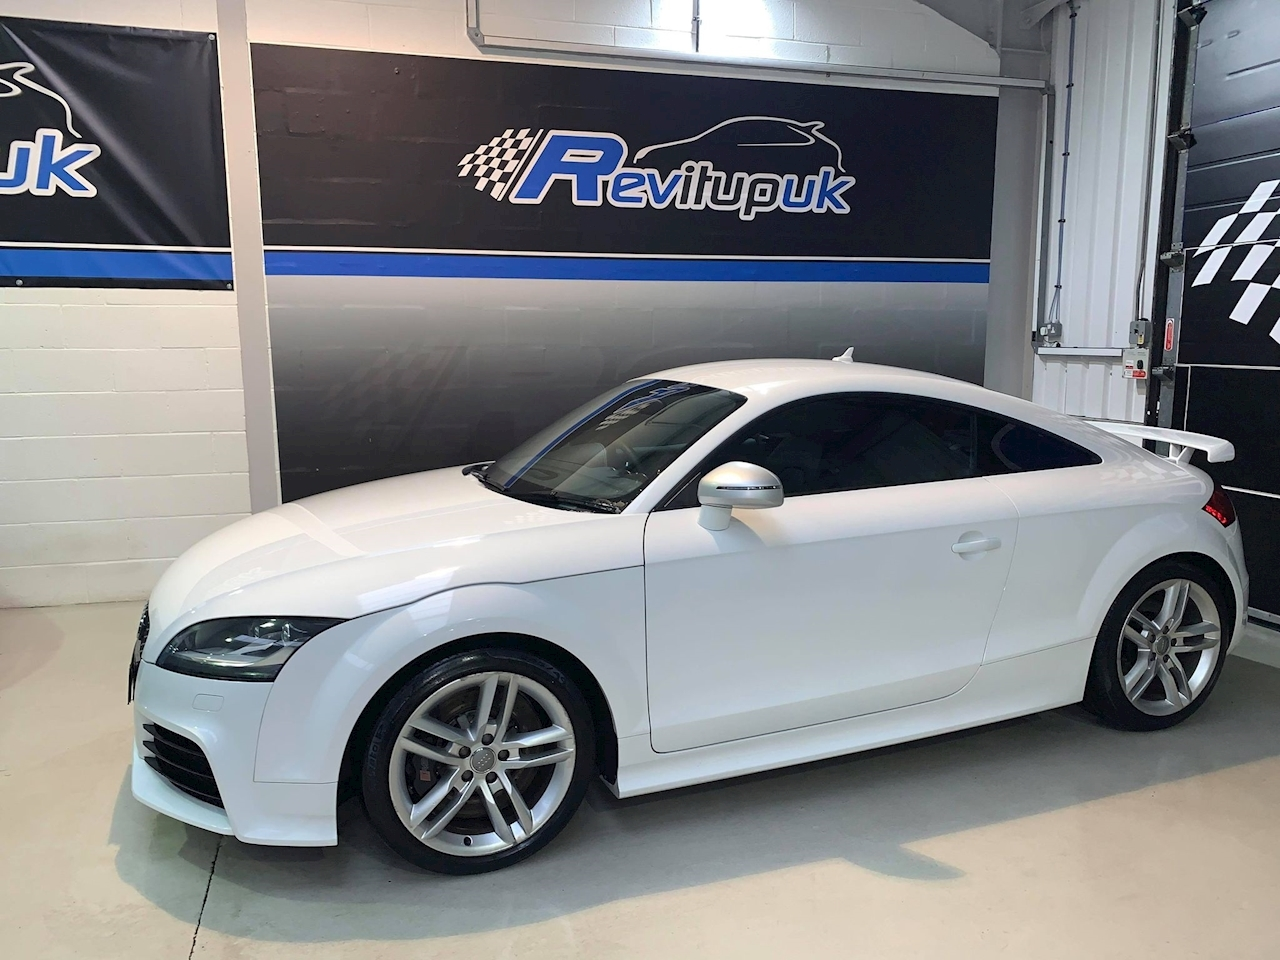 2.5 Coupe 2dr Petrol Manual quattro (214 g/km, 335 bhp)